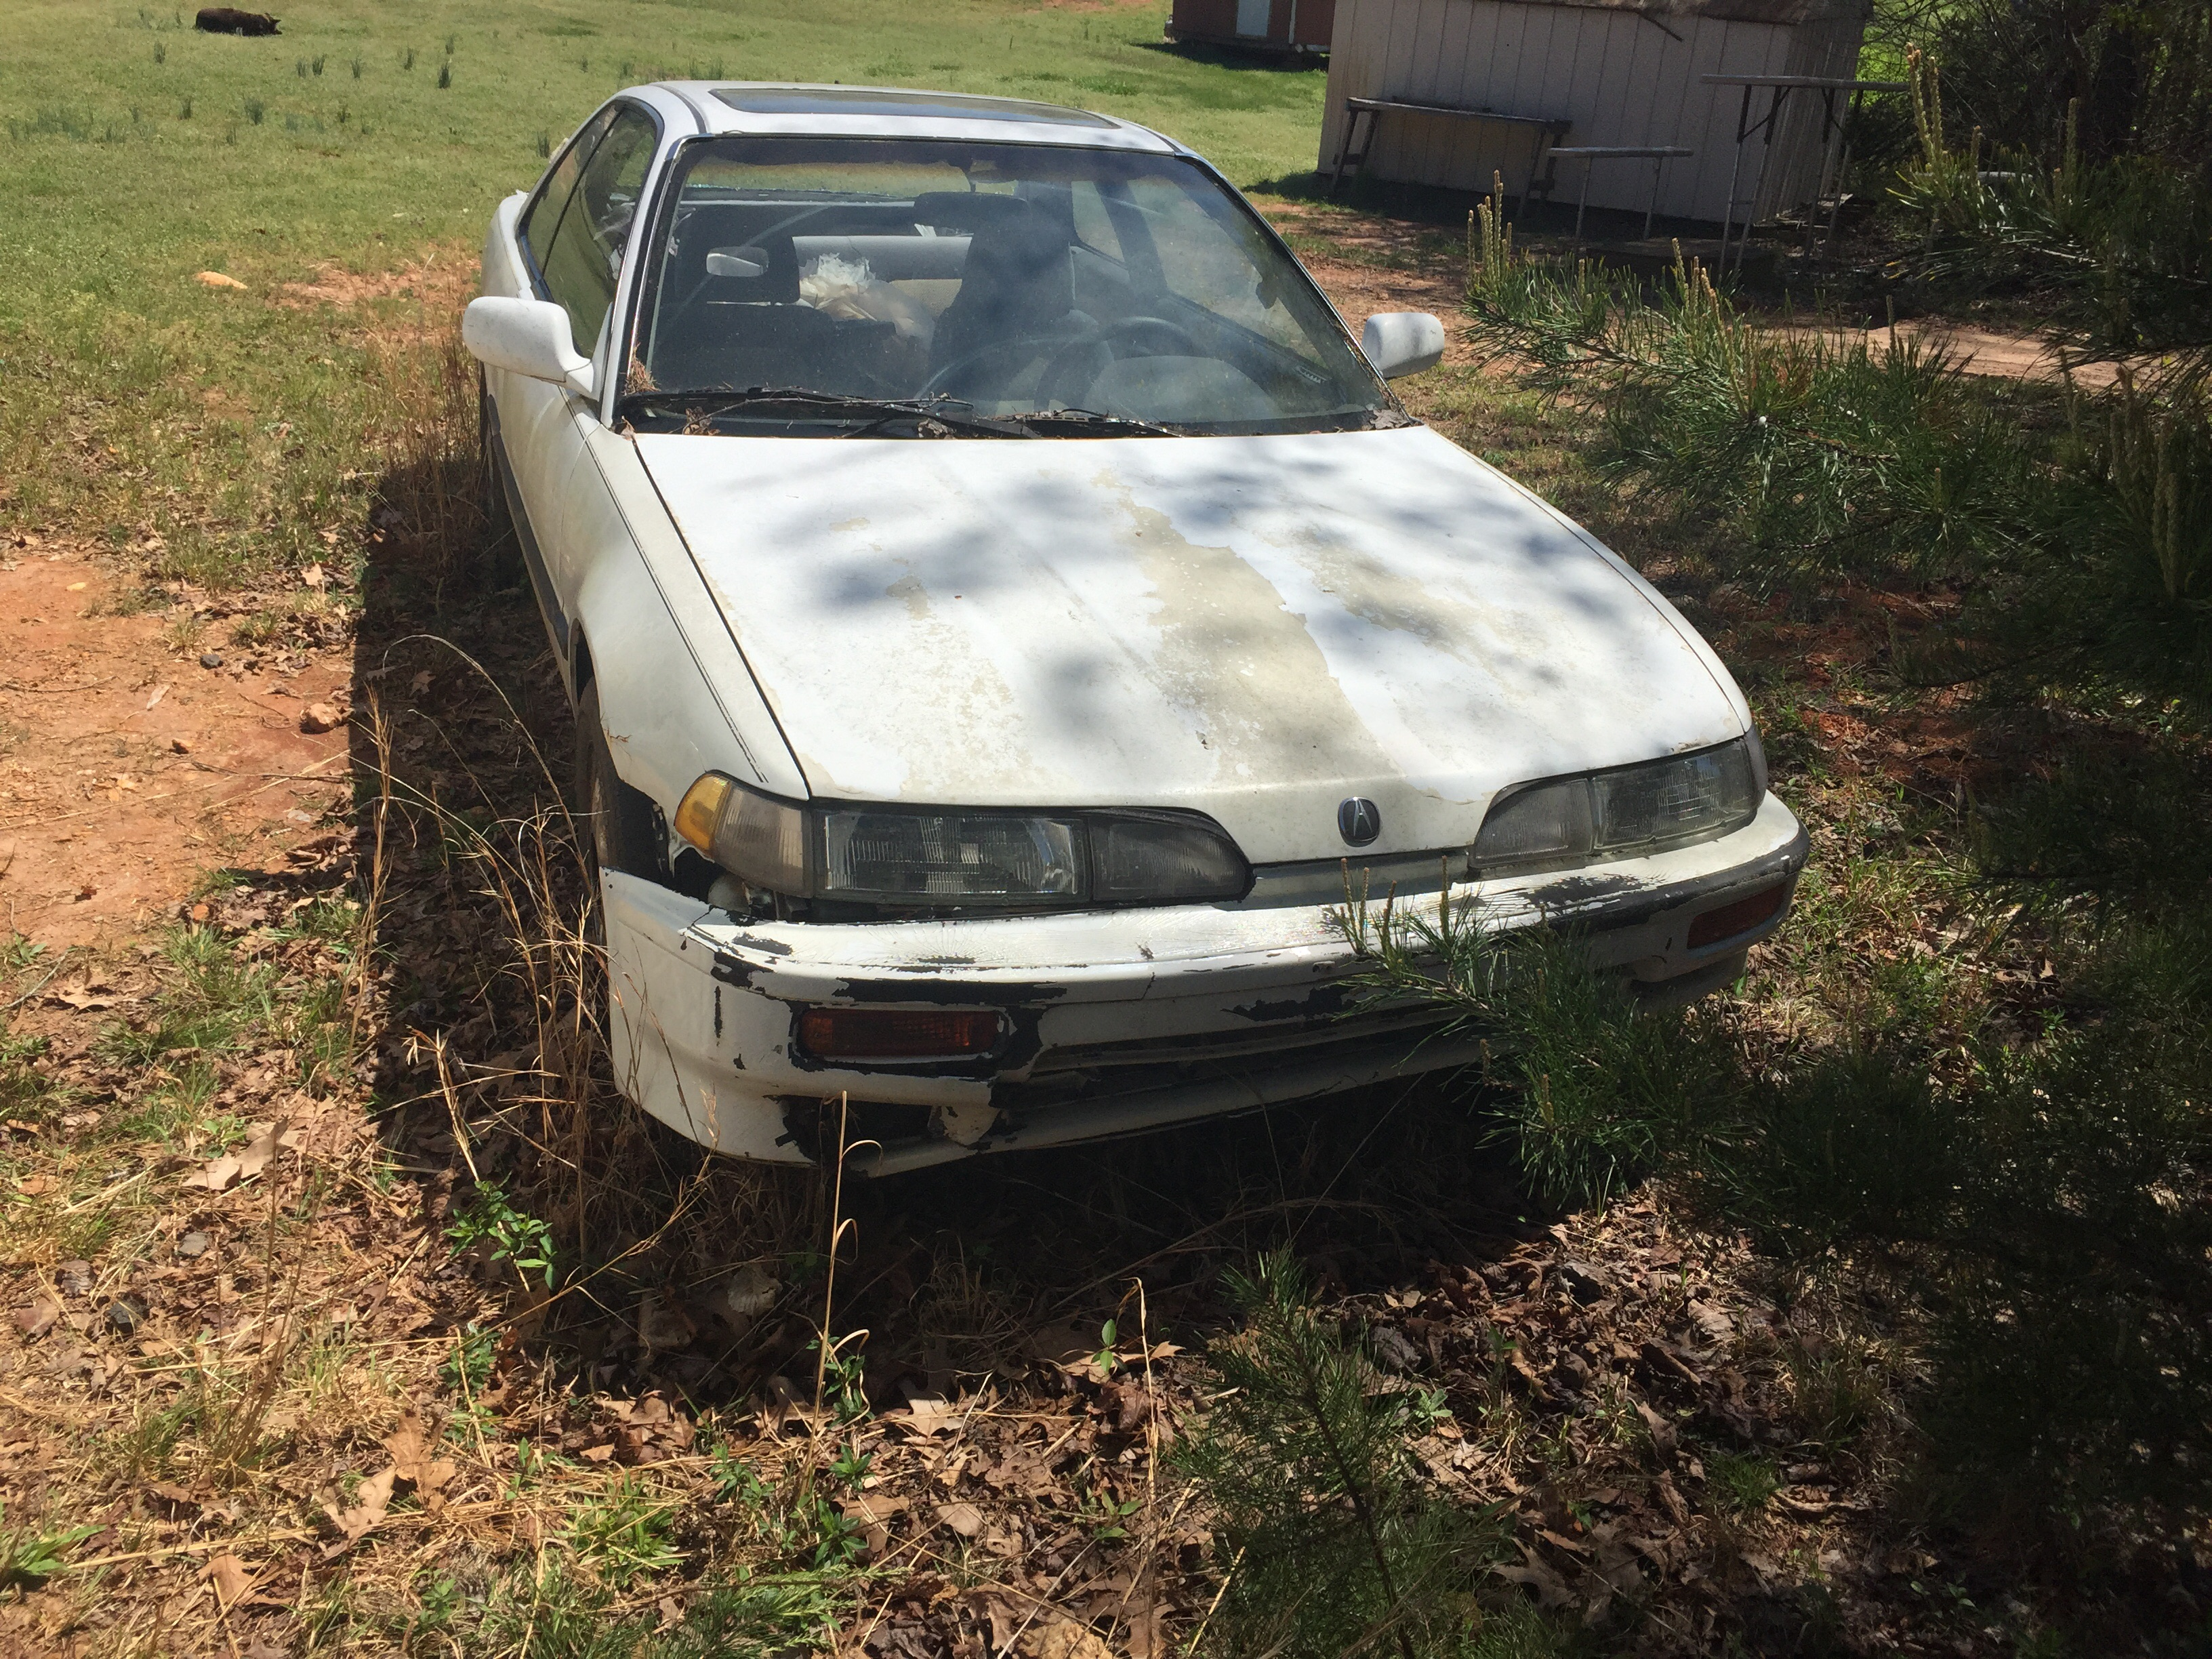 Cash for Cars Anderson, SC | Sell Your Junk Car | The Clunker Junker